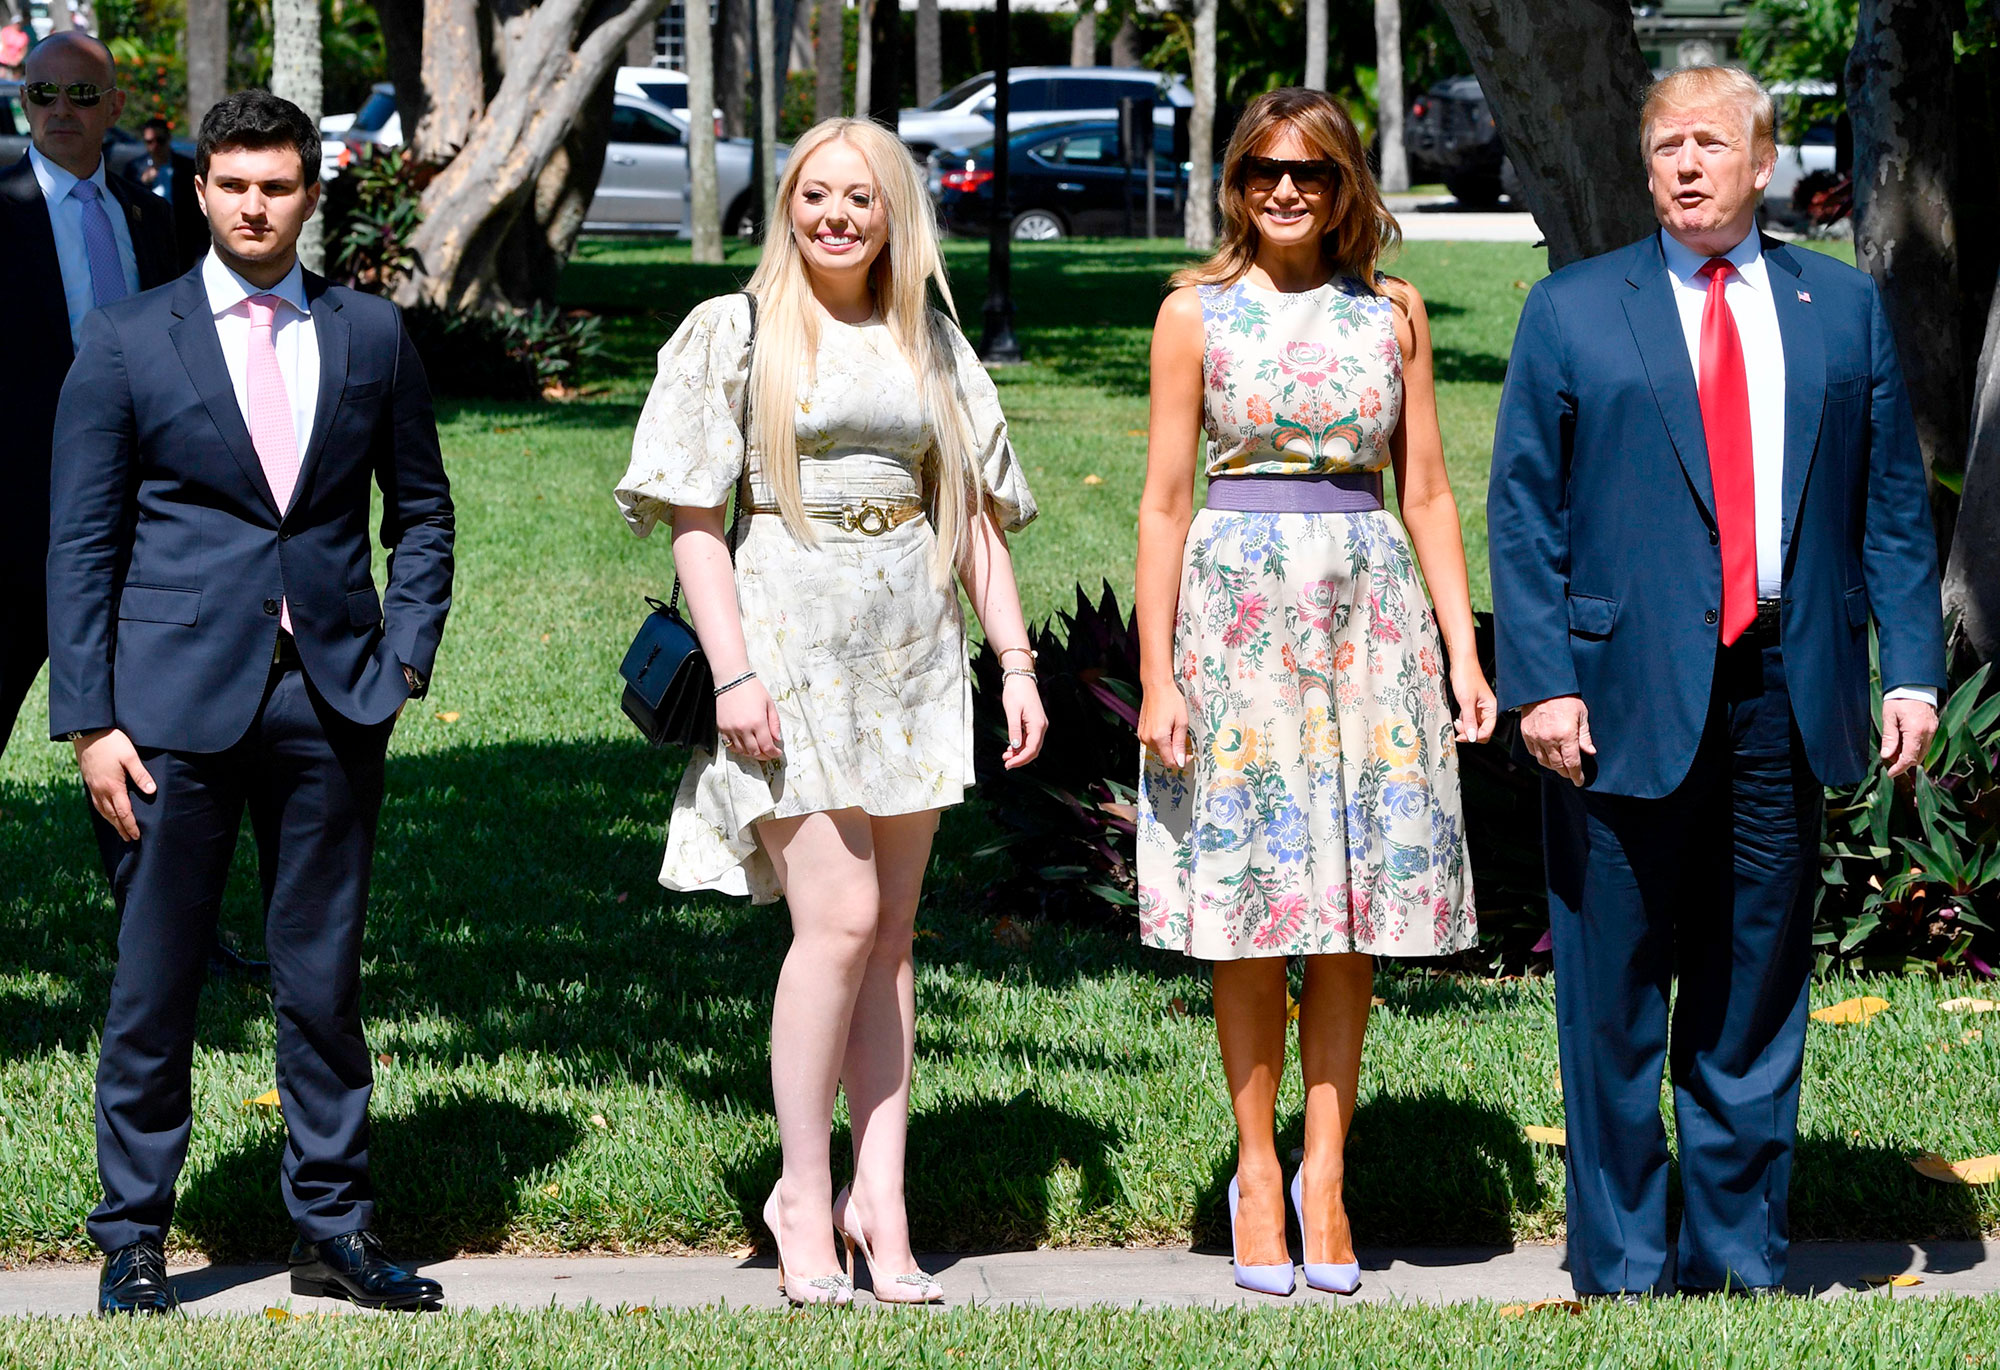 US President Donald Trump, First Lady Melania Trump, his daughter Tiffany Trump